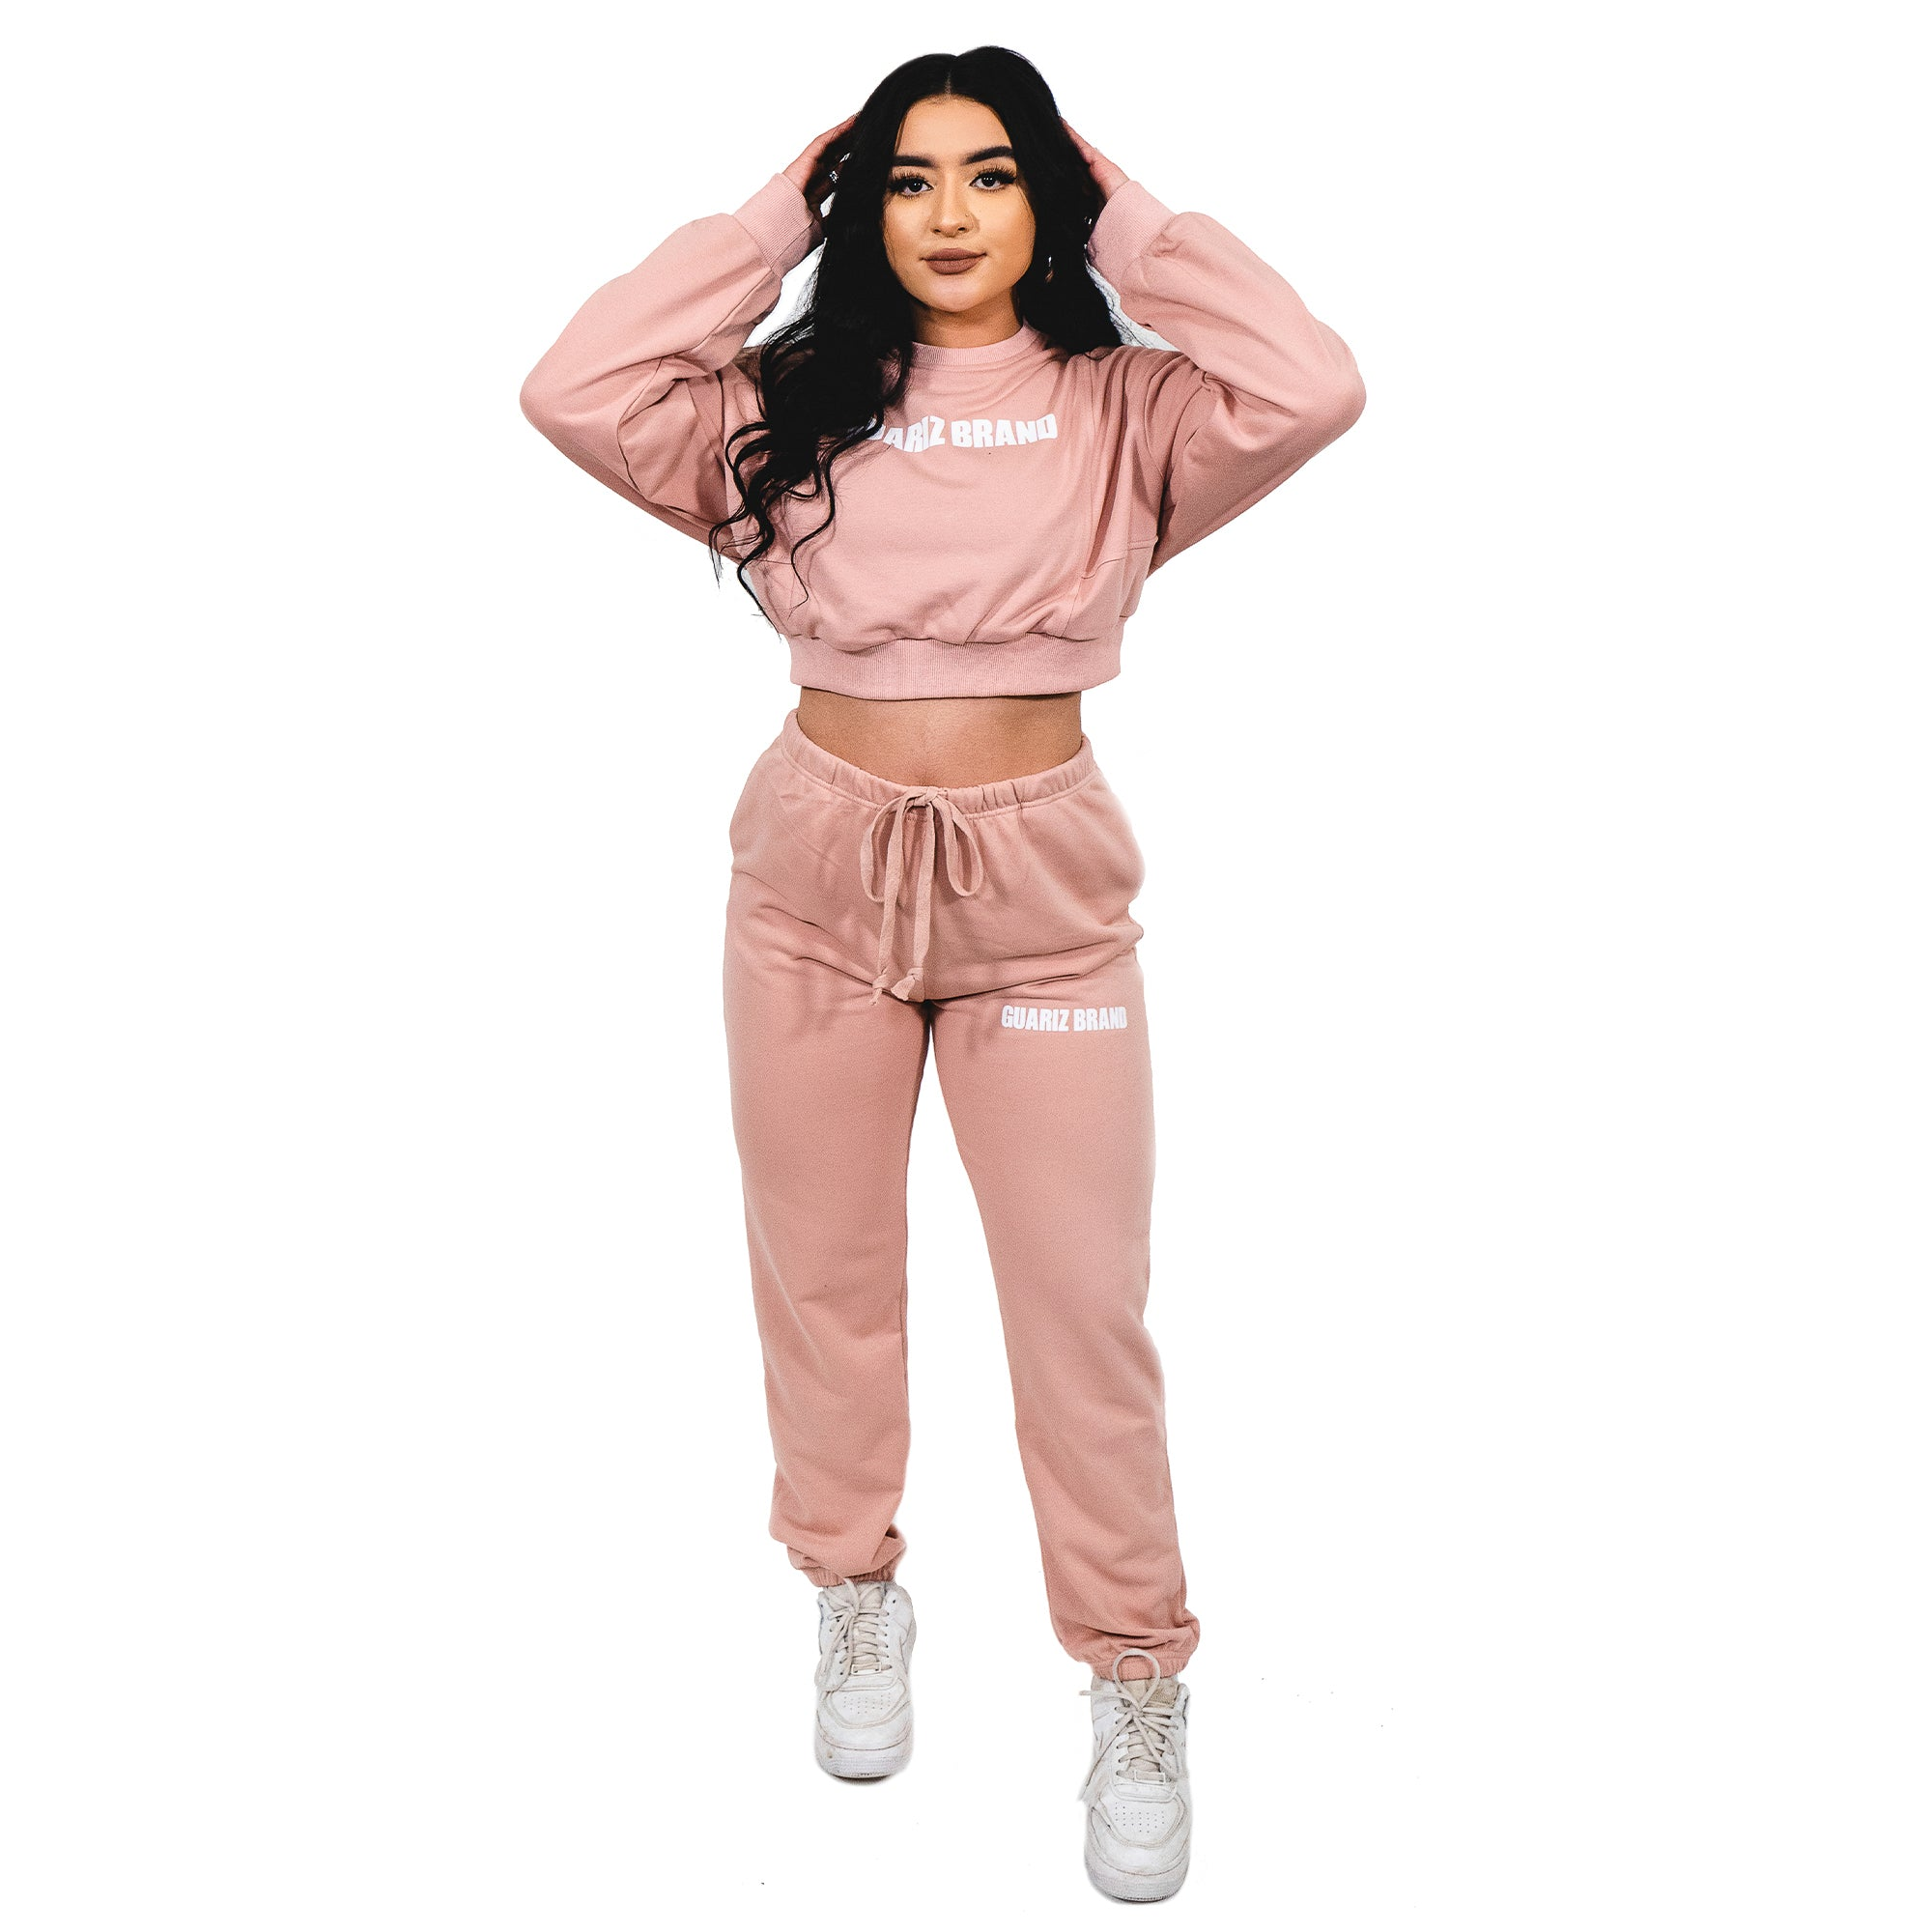 GUARIZ ESSENTIALS PEACH PINK BOTTOM